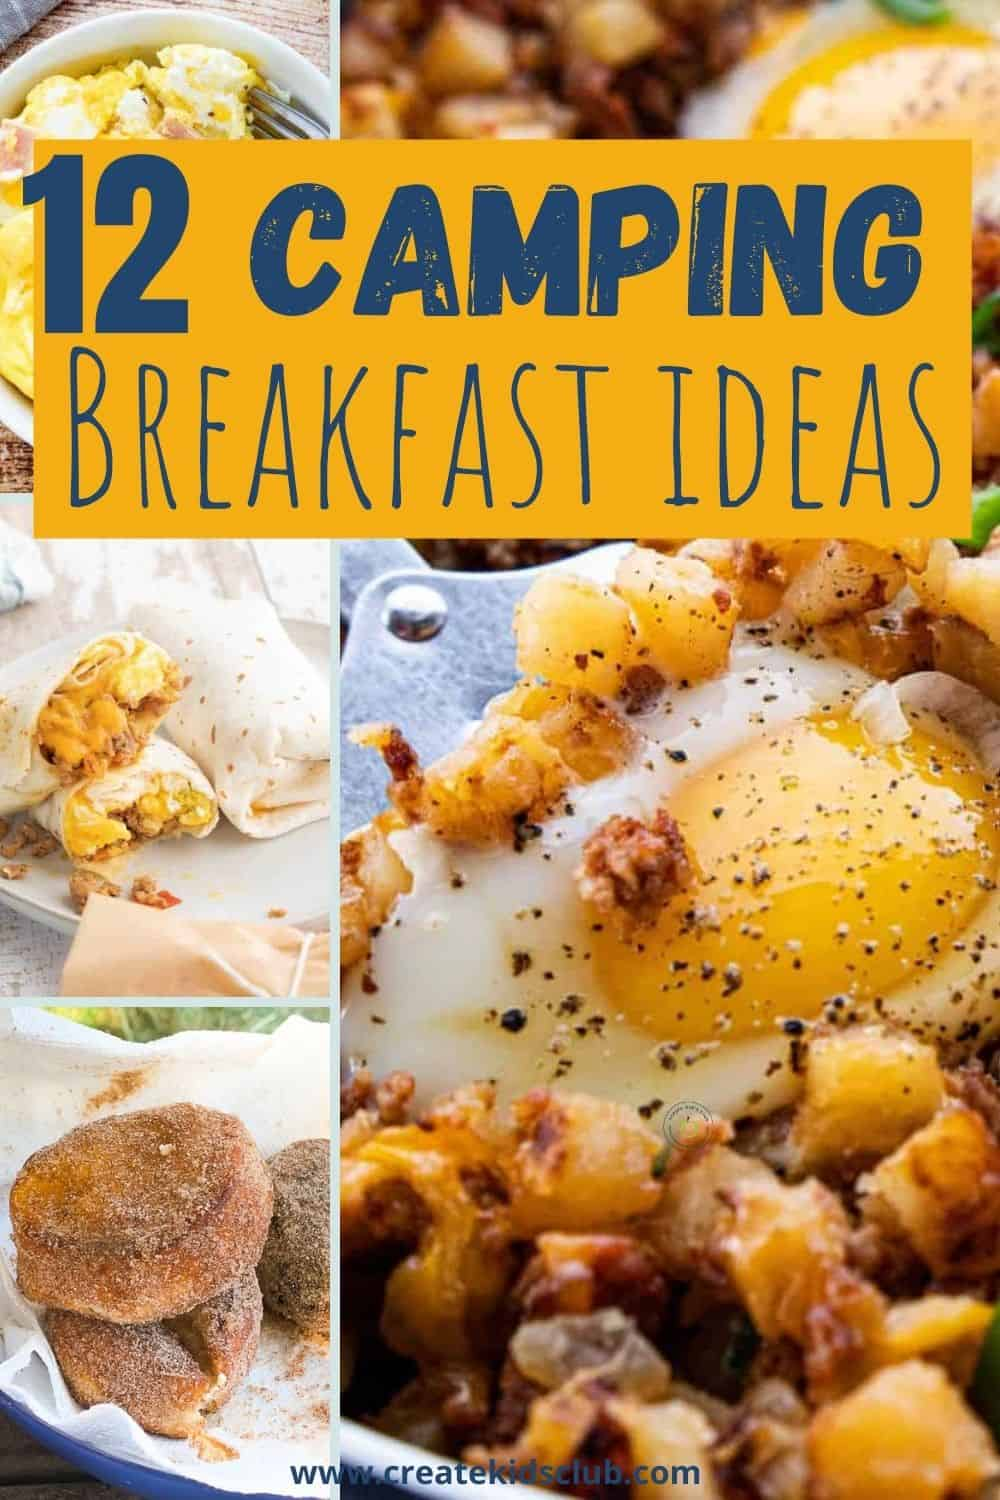 pictures of camping breakfasts including doughnuts, burritos, and an egg scramble.